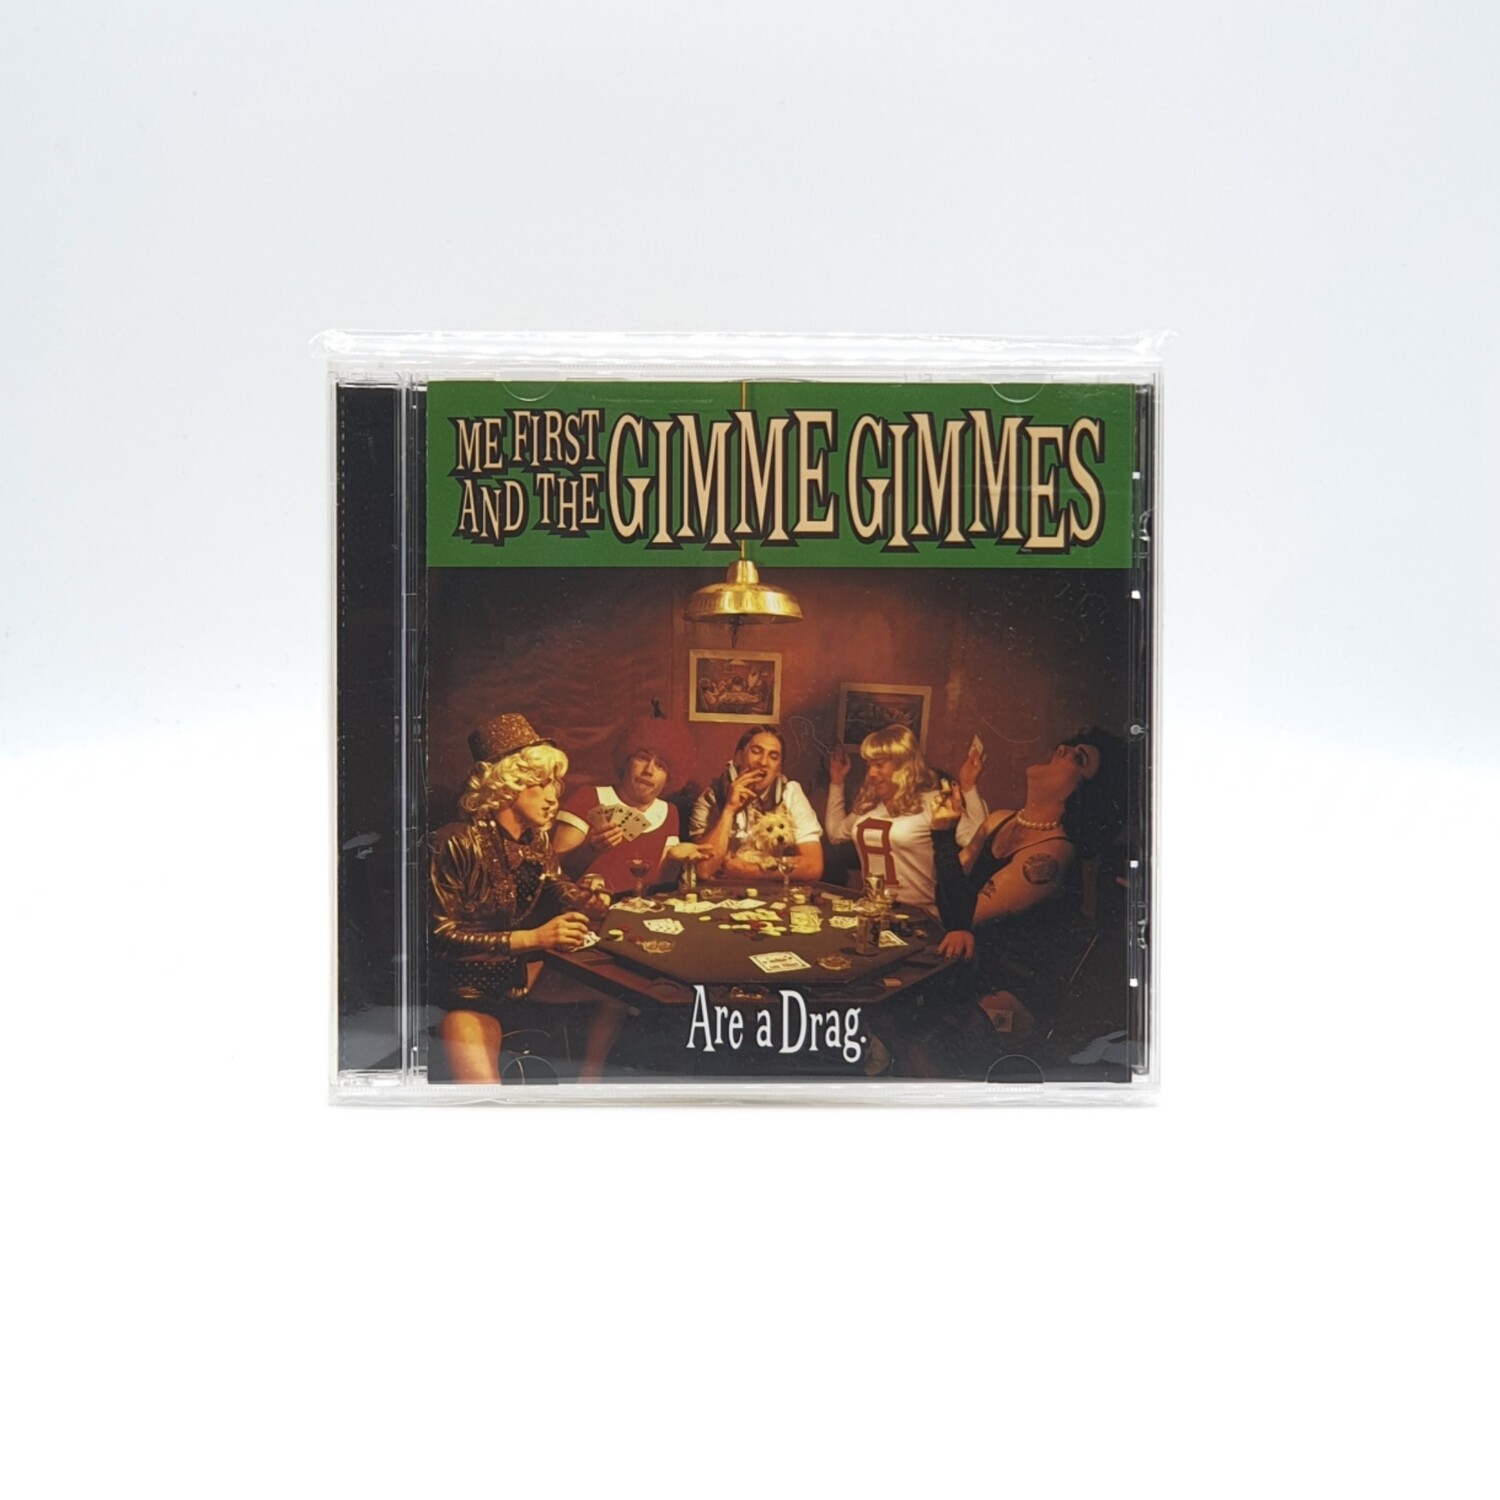 [USED] ME FIRST AND THE GIMME GIMMES -ARE A DRAG- CD